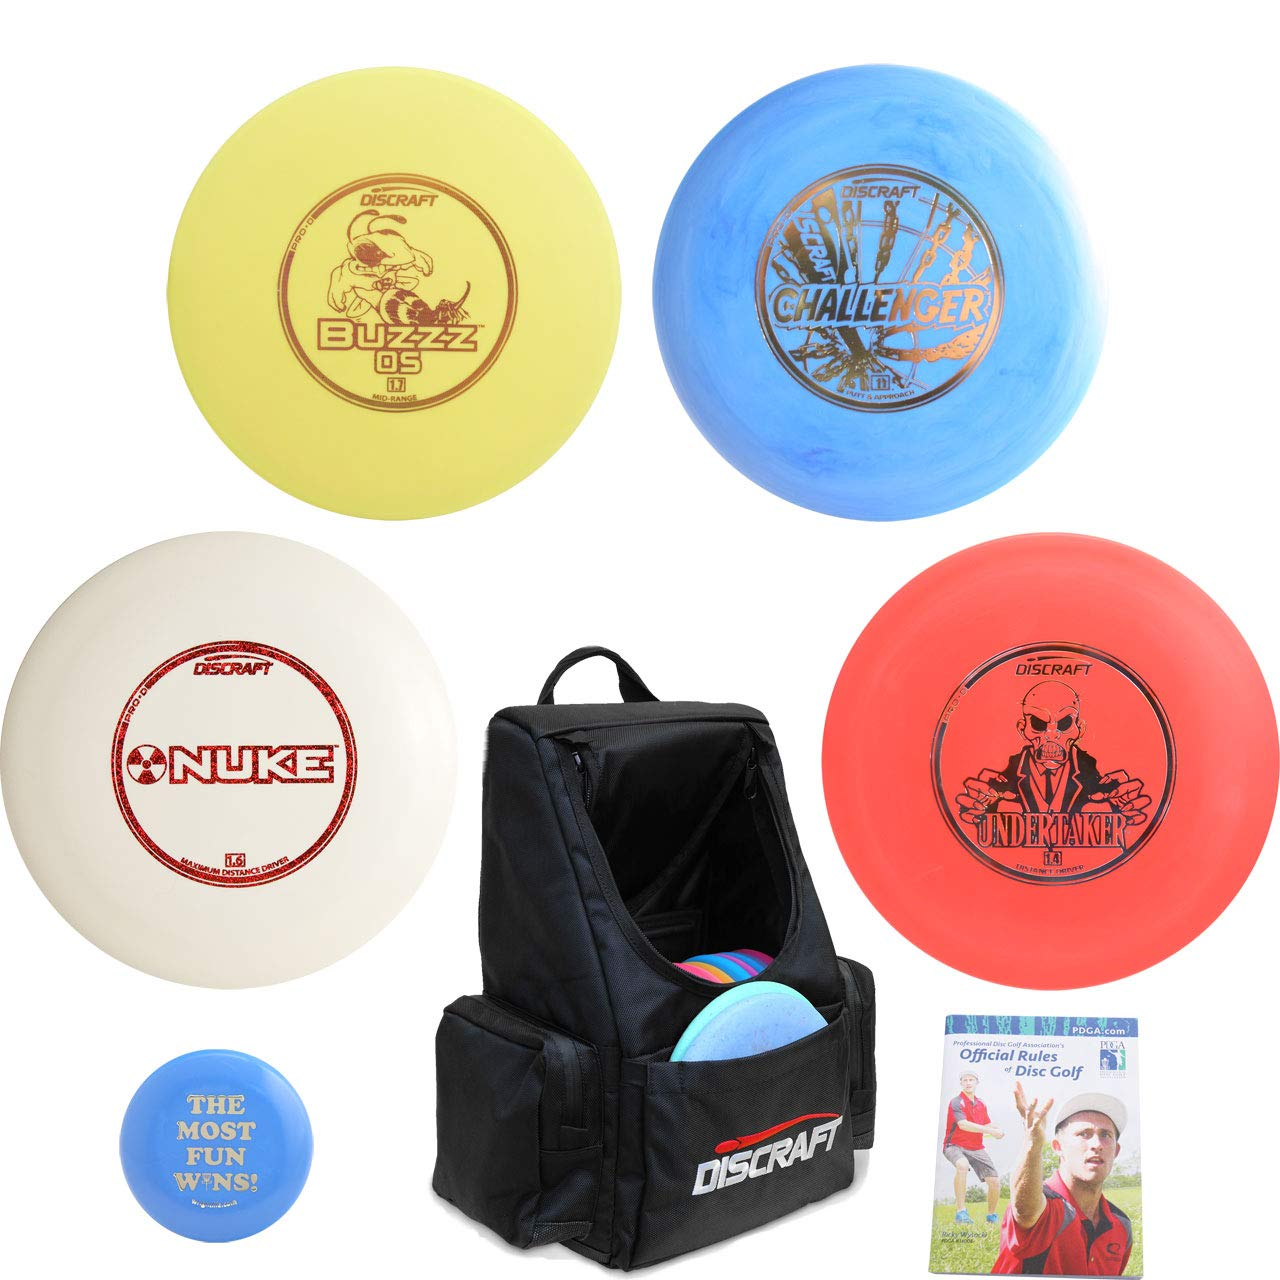 Discraft Complete Disc Golf Advanced Set Gift Bundle - Tournament Backpack Bag, 2 Drivers, Mid-Range, Putter + Mini Marker Disc & Rules (Black)